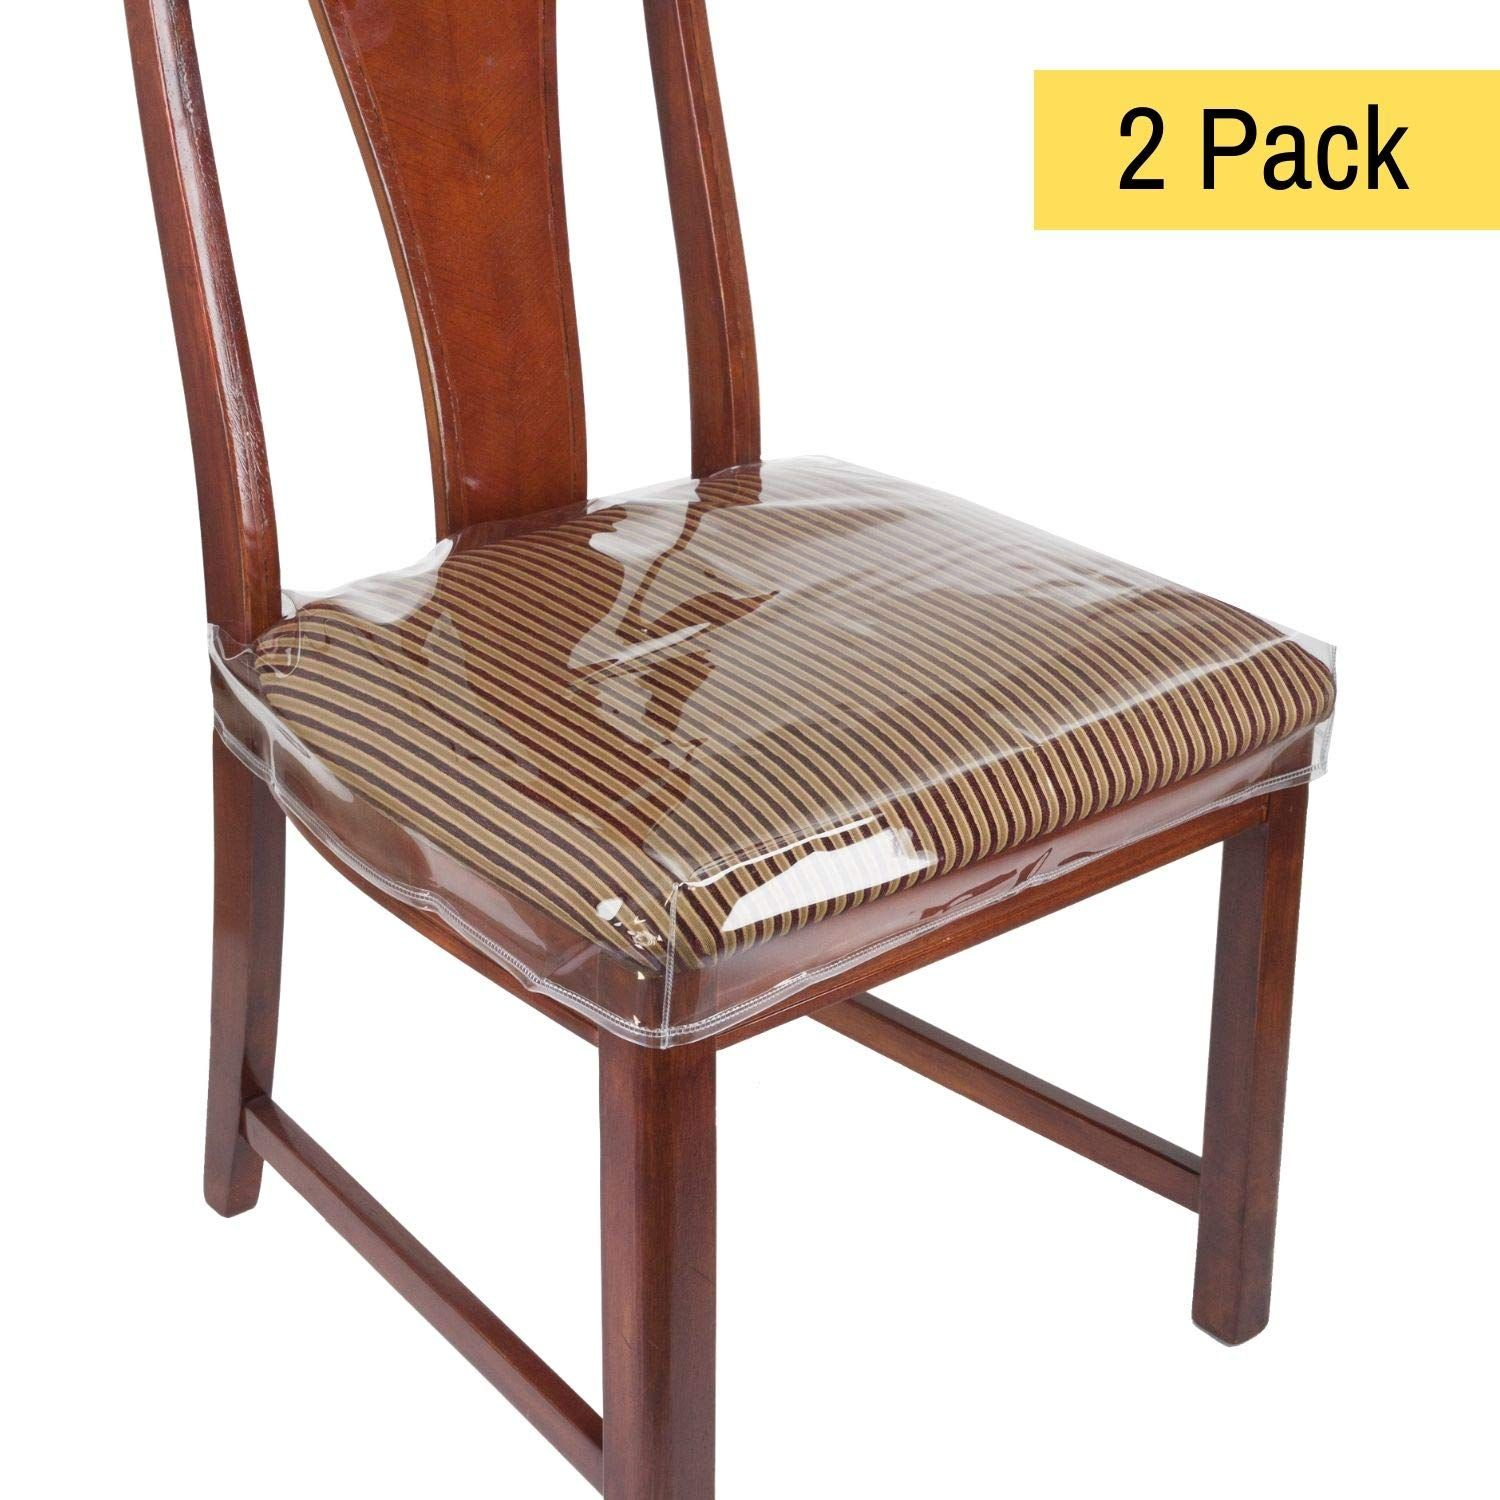 19 Best Cushion Covers For Dining Room Chairs 2019 Dining Room Chair Slipcovers Seat Covers For Chairs Slipcovers For Chairs